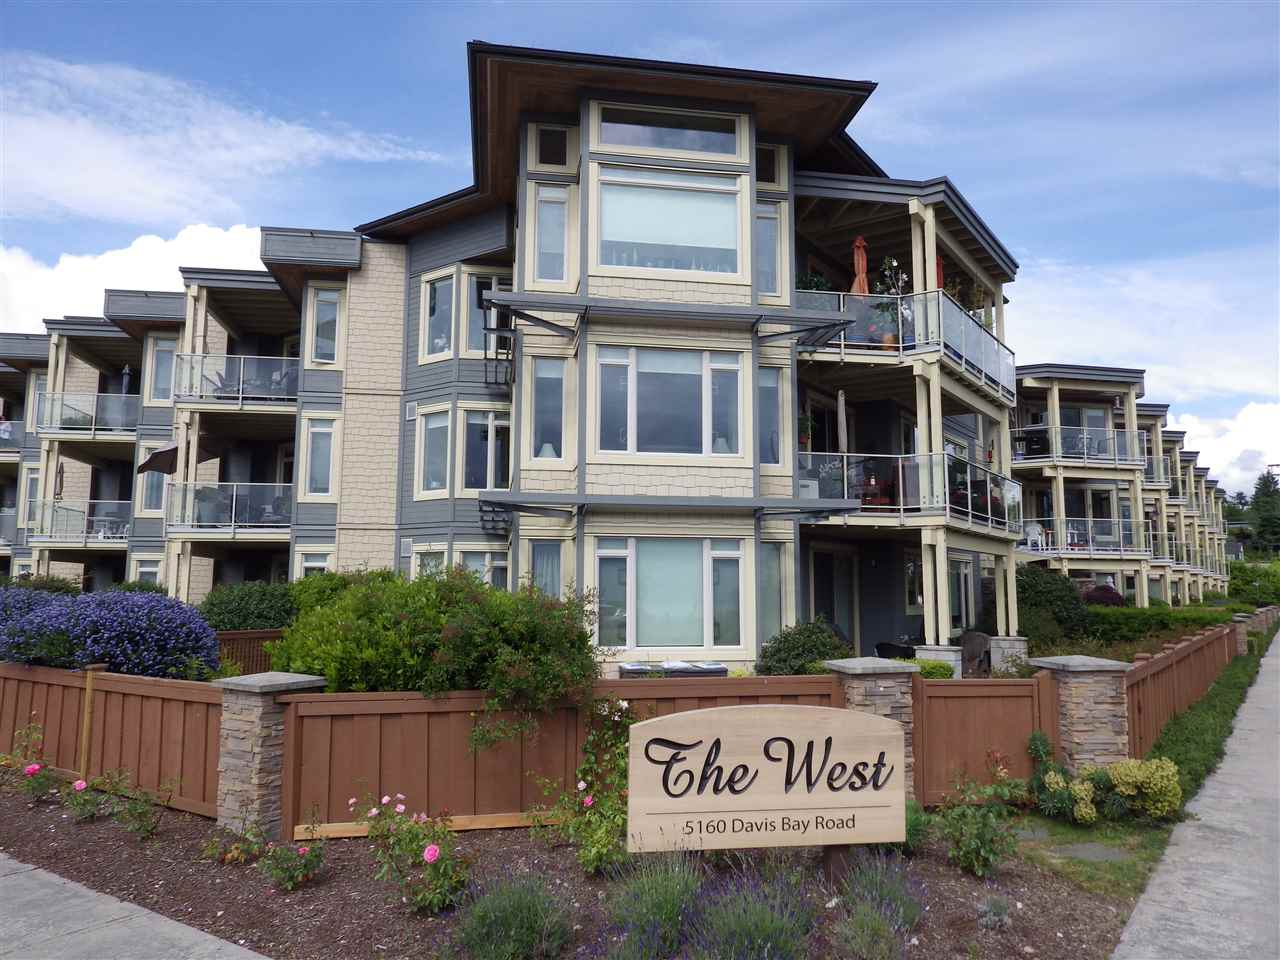 "Photo 1: Photos: 238 5160 DAVIS BAY Road in Sechelt: Sechelt District Condo for sale in ""THE WEST"" (Sunshine Coast)  : MLS®# R2177462"